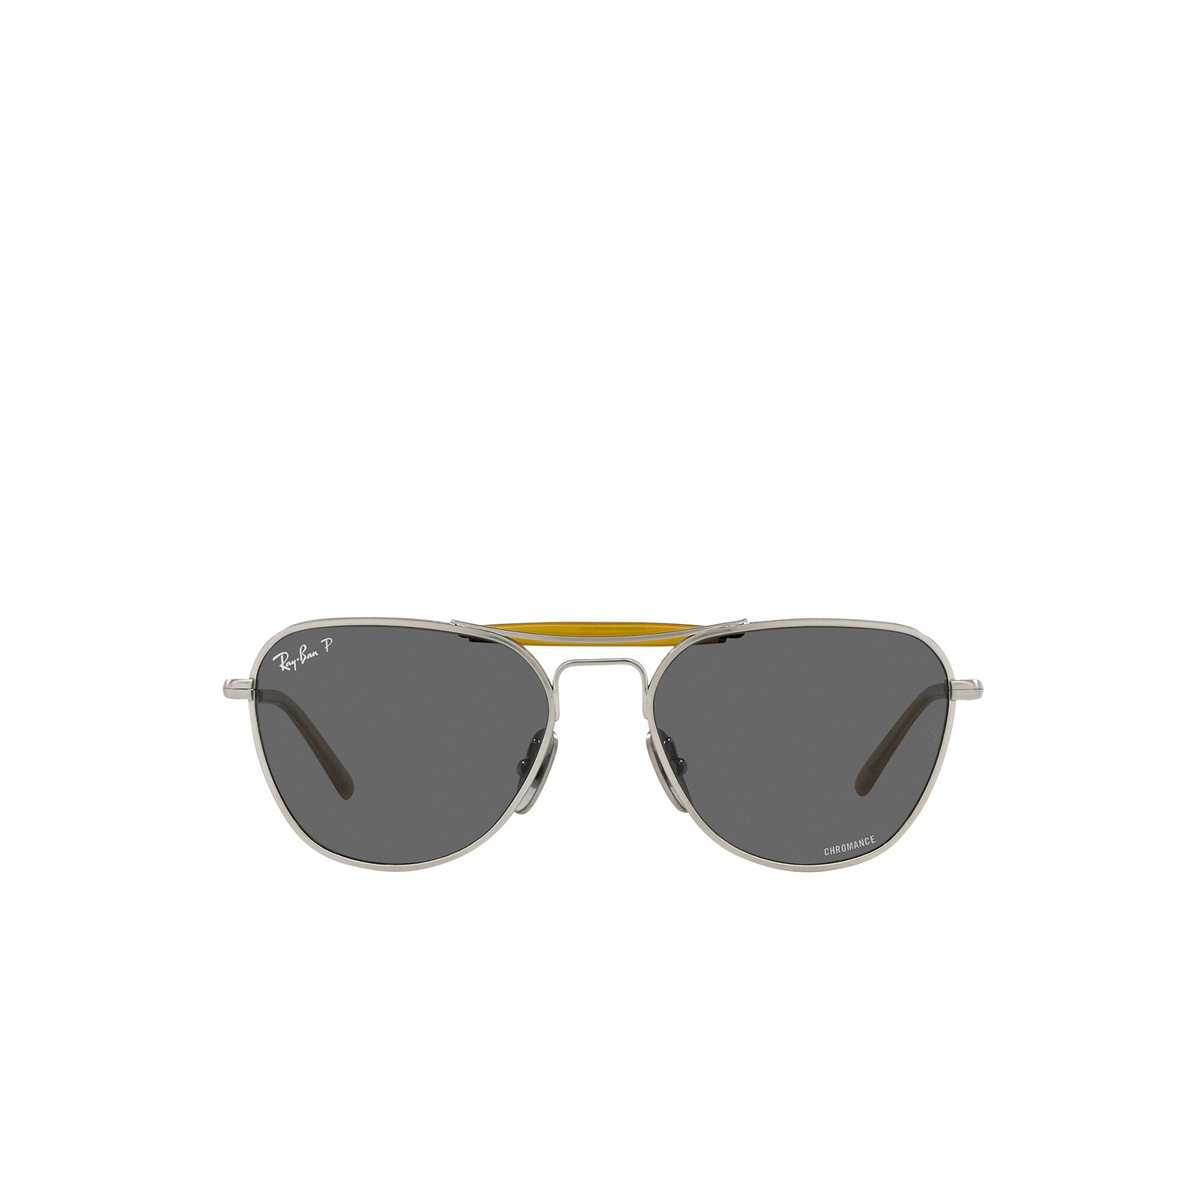 Ray-Ban® Irregular Sunglasses: RB8064 color Brushed Silver 9206K8 - front view.